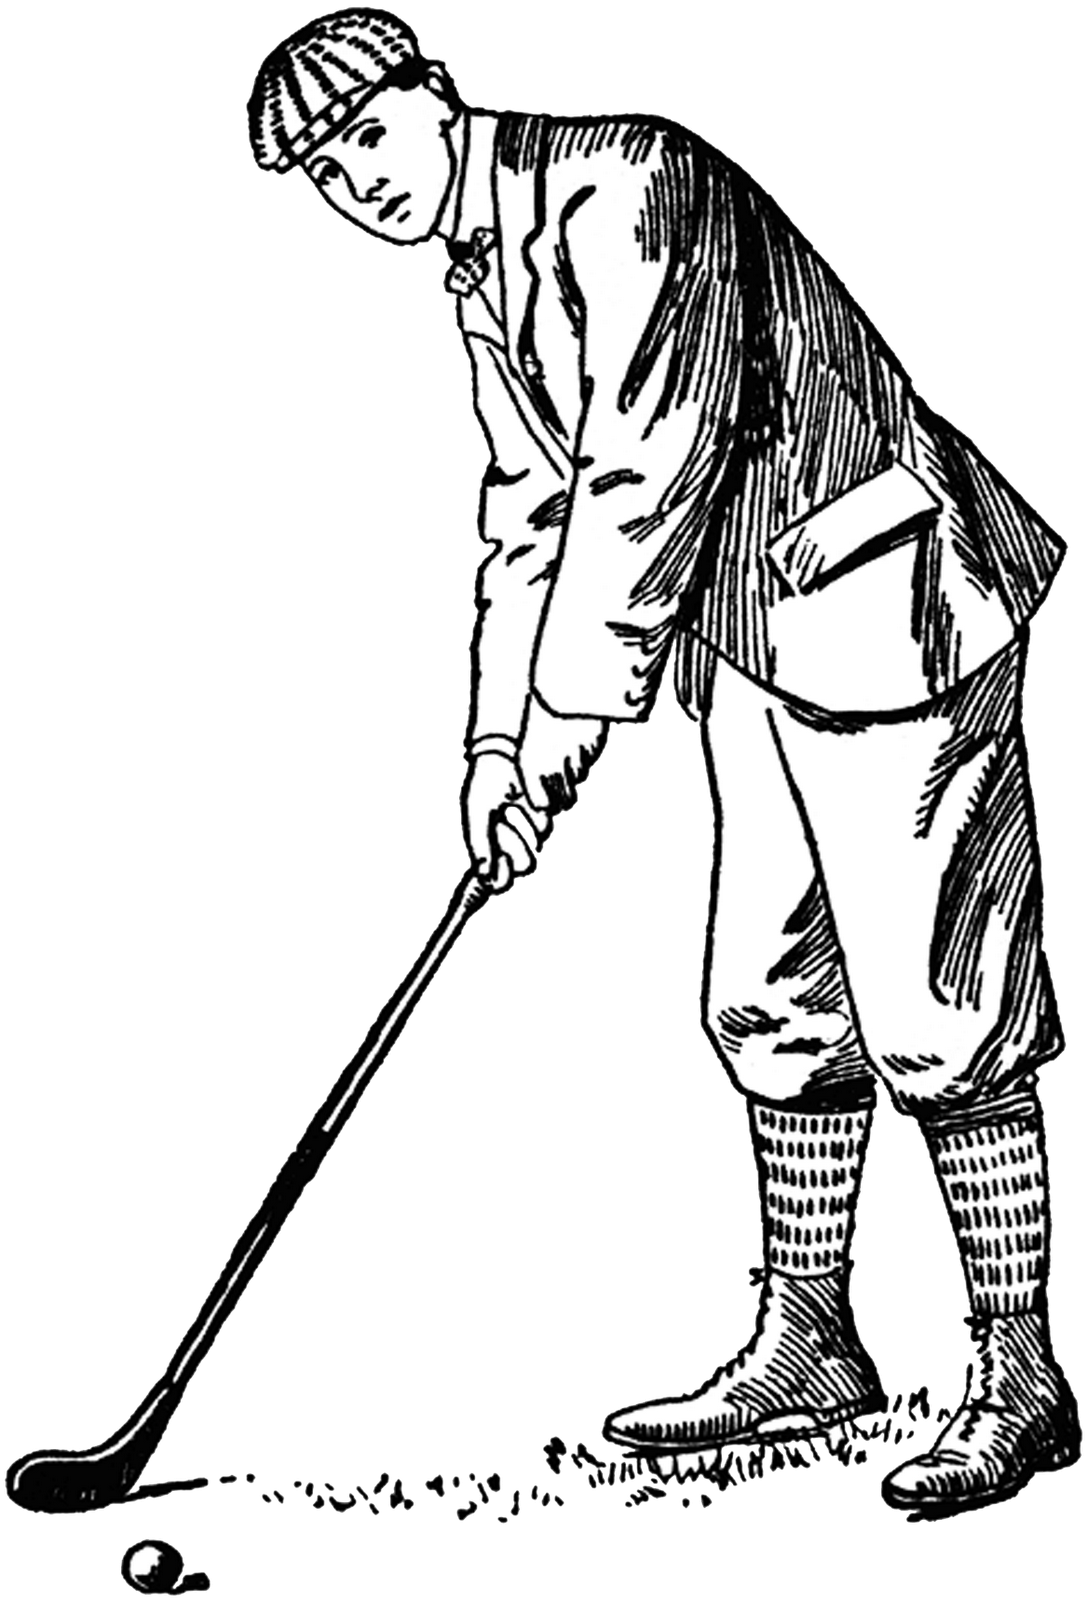 Golfer drawing fine. Digital printable young graphic